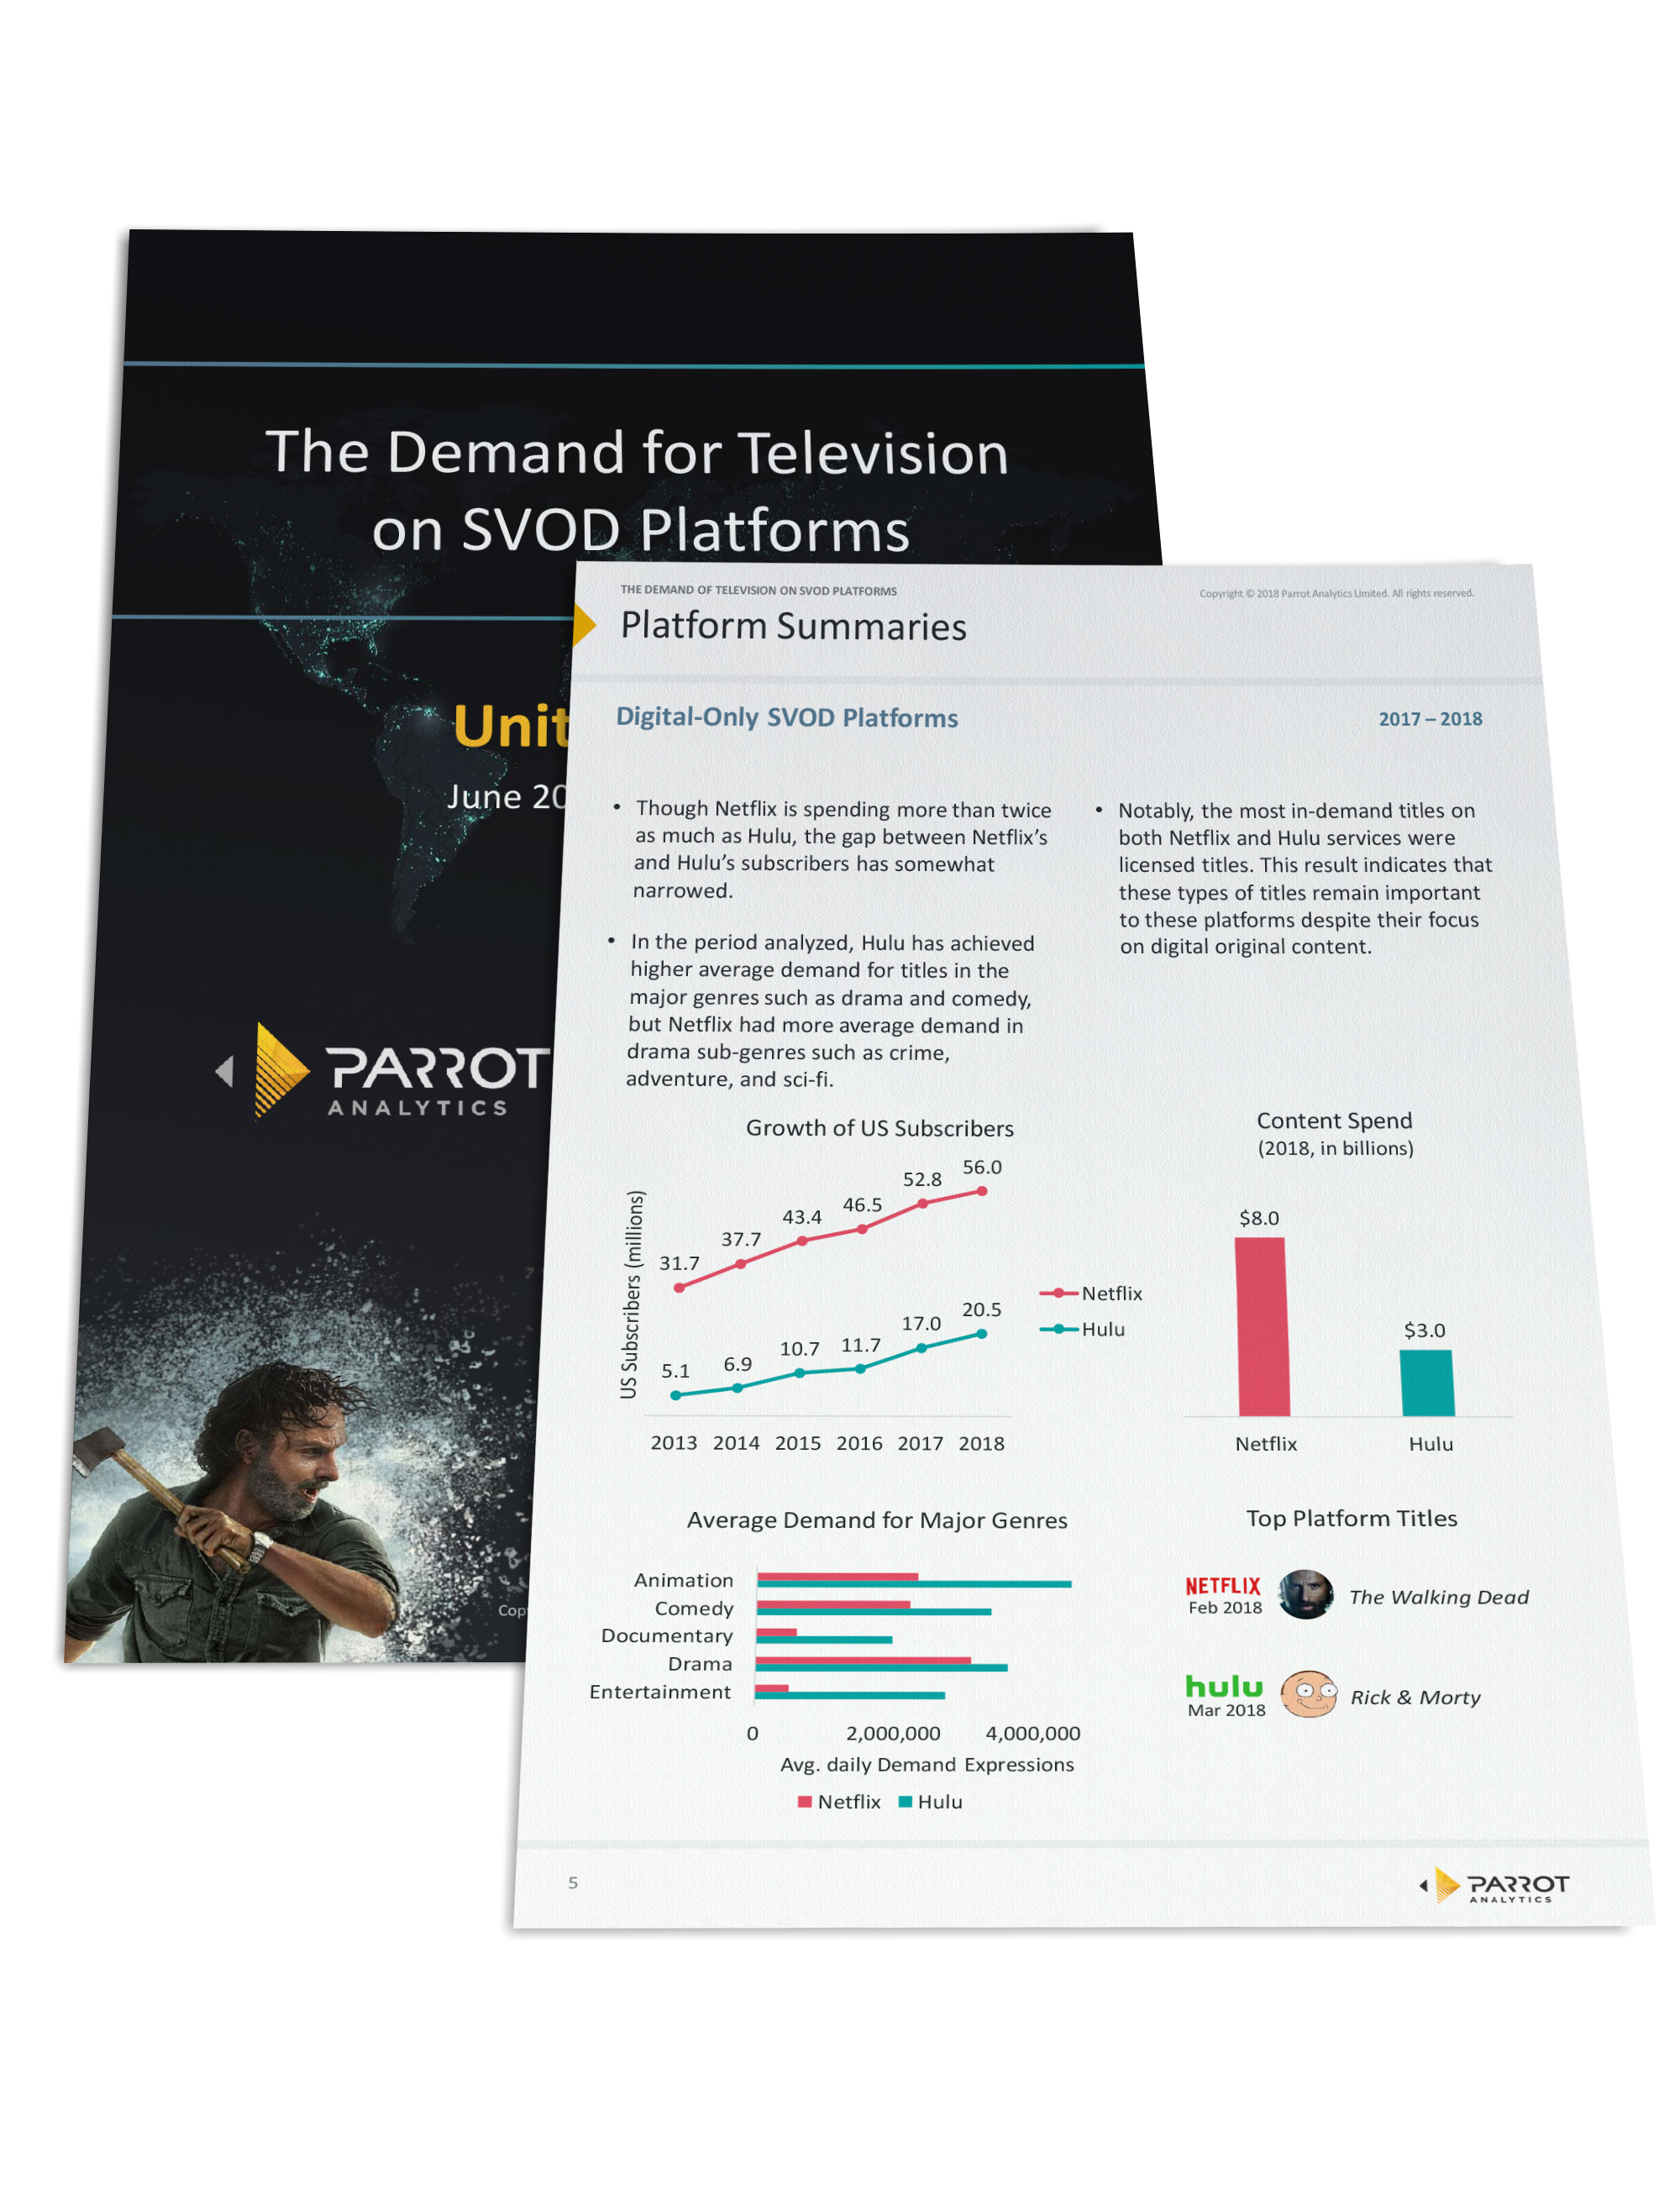 The demand for television on SVOD platforms in the U.S.